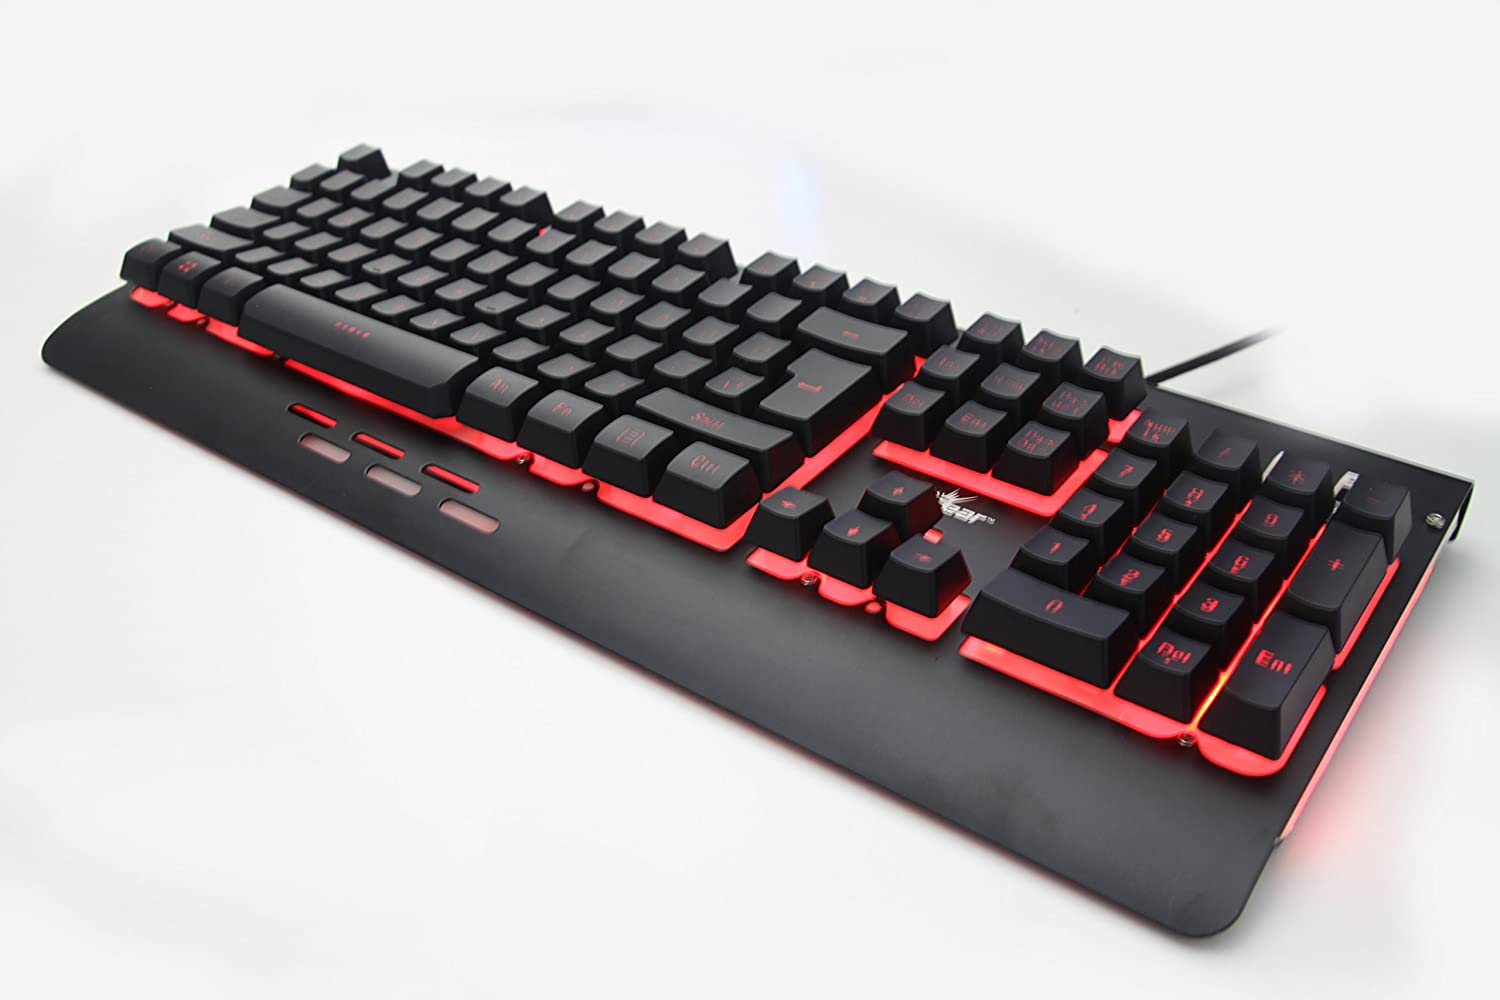 Redgear Blaze 3 colour backlit gaming keyboard with full aluminium body & windows key lock